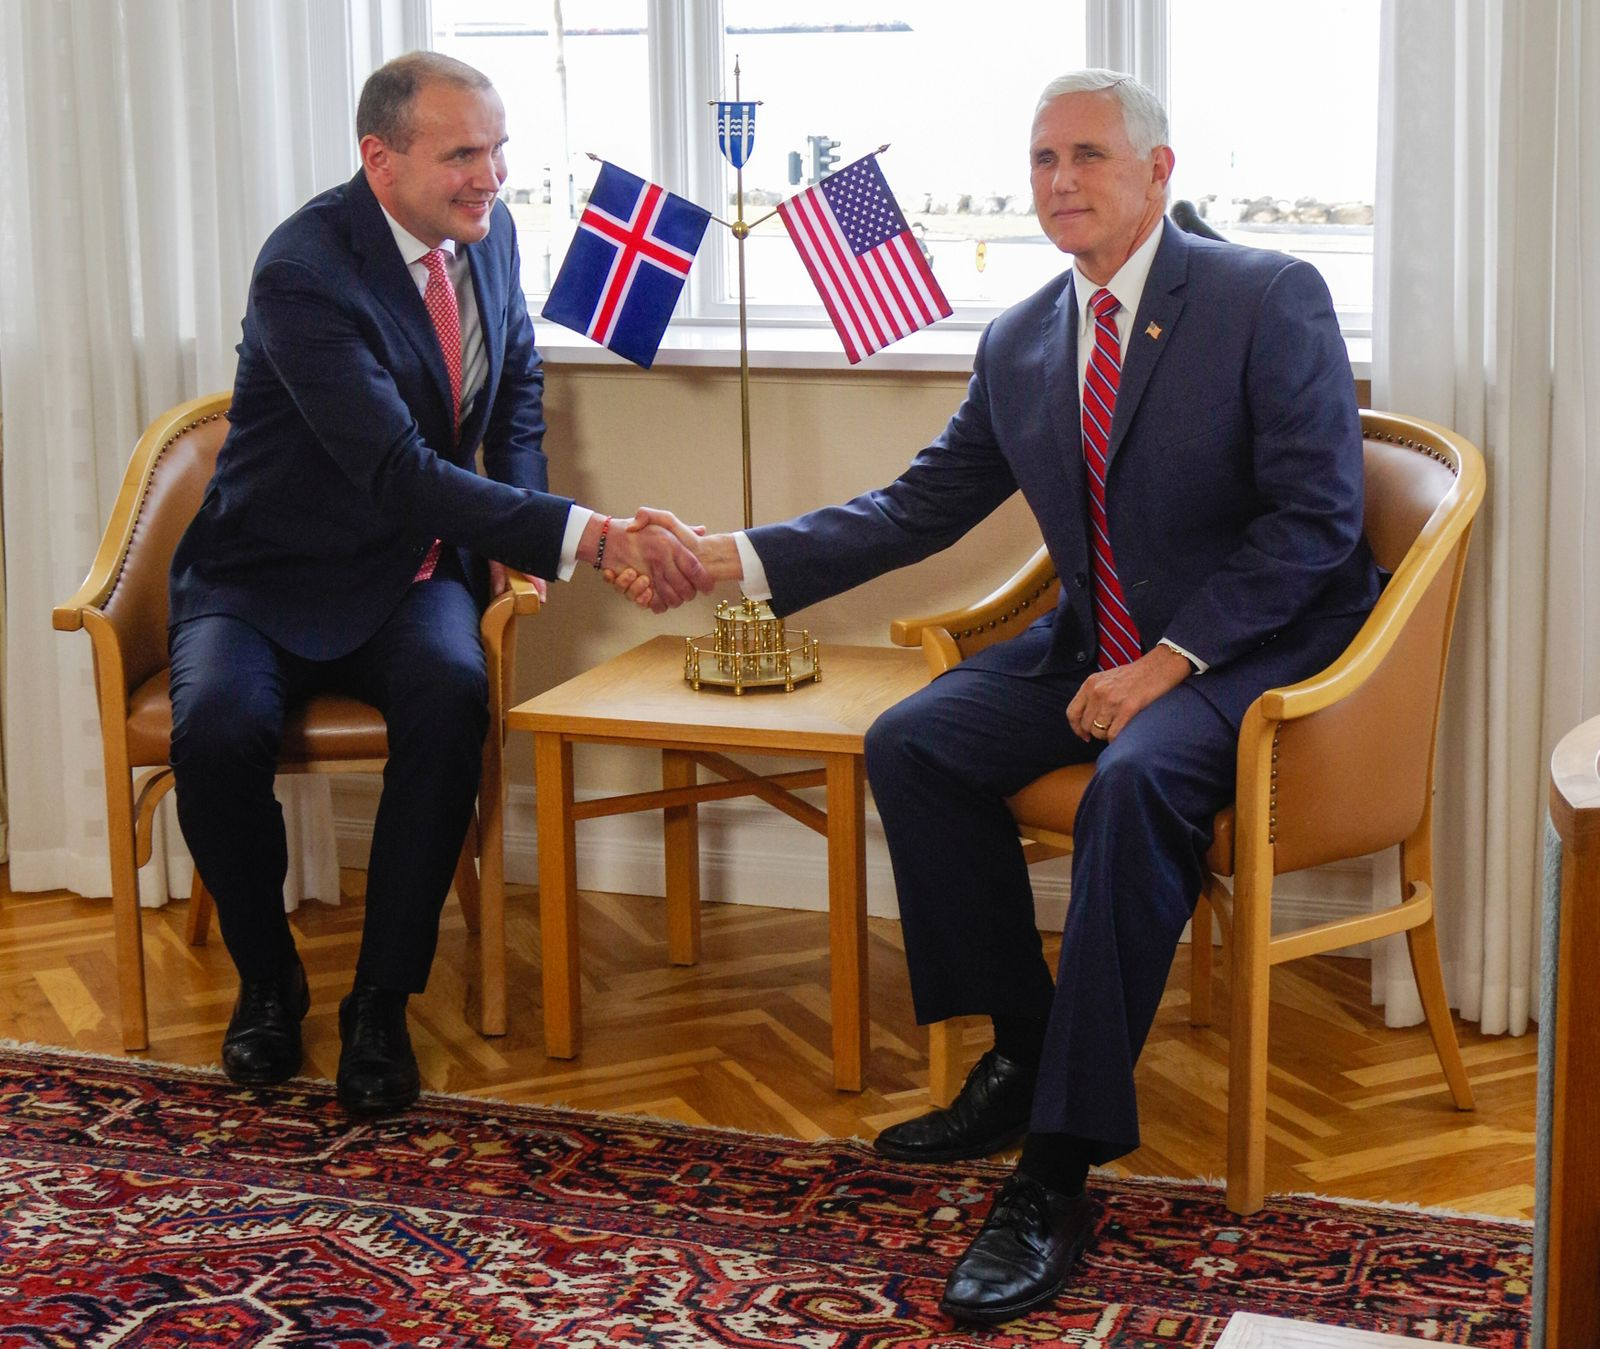 Iceland's President Johannesson shakes hands with U.S. Vice President Pence in Hofdi House in Reykjavik